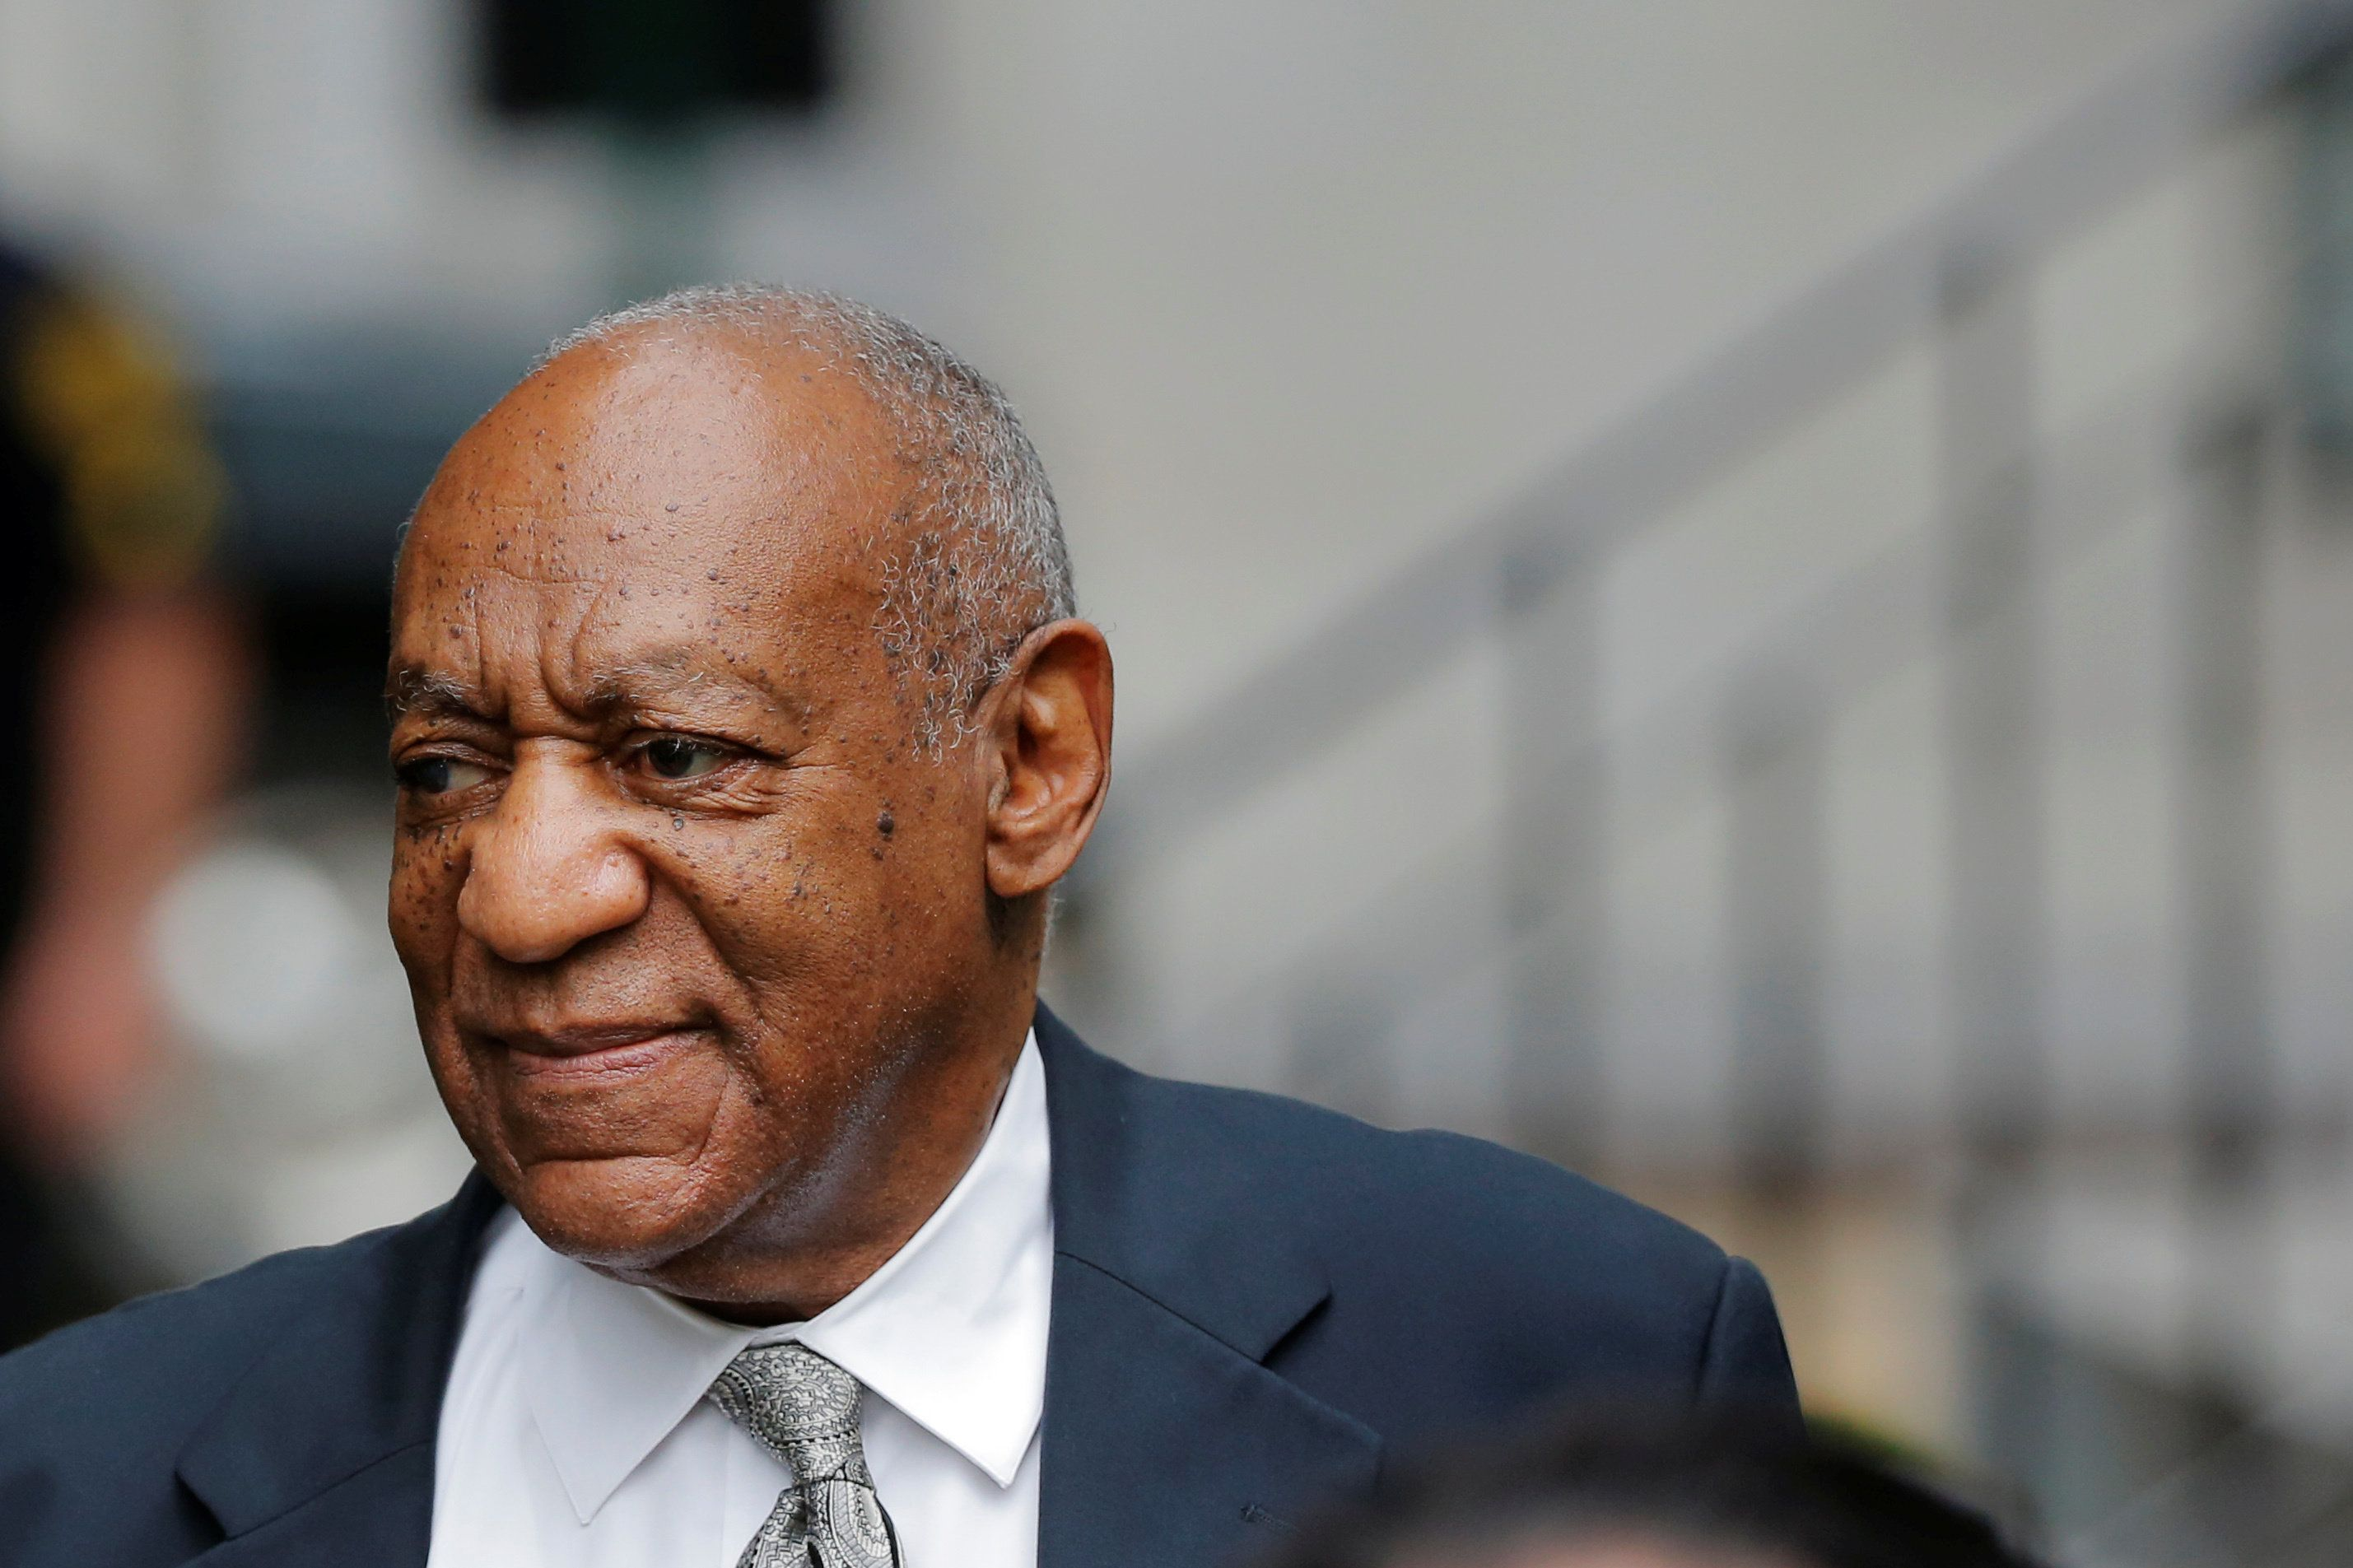 The announcement that Bill Cosby is considering a tour to talk about sexual assault has not been welcomed.